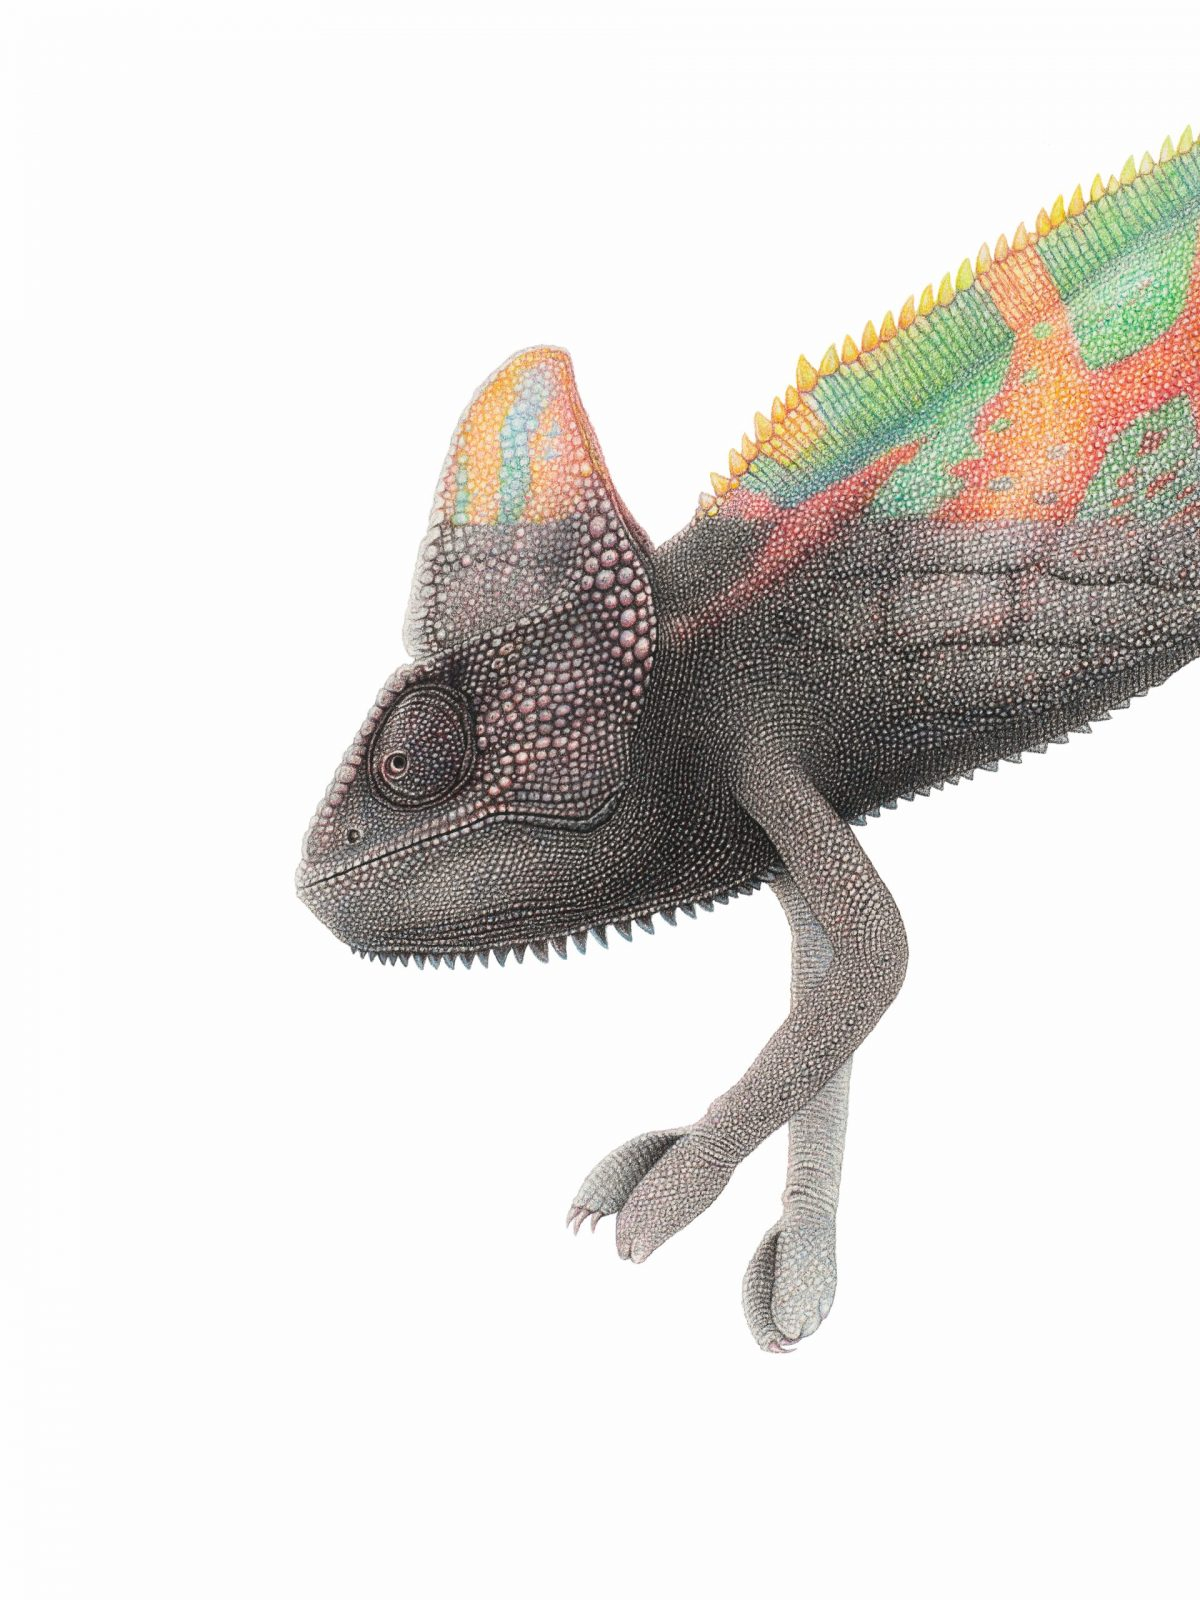 pastel drawing of a chameleon turning into concrete